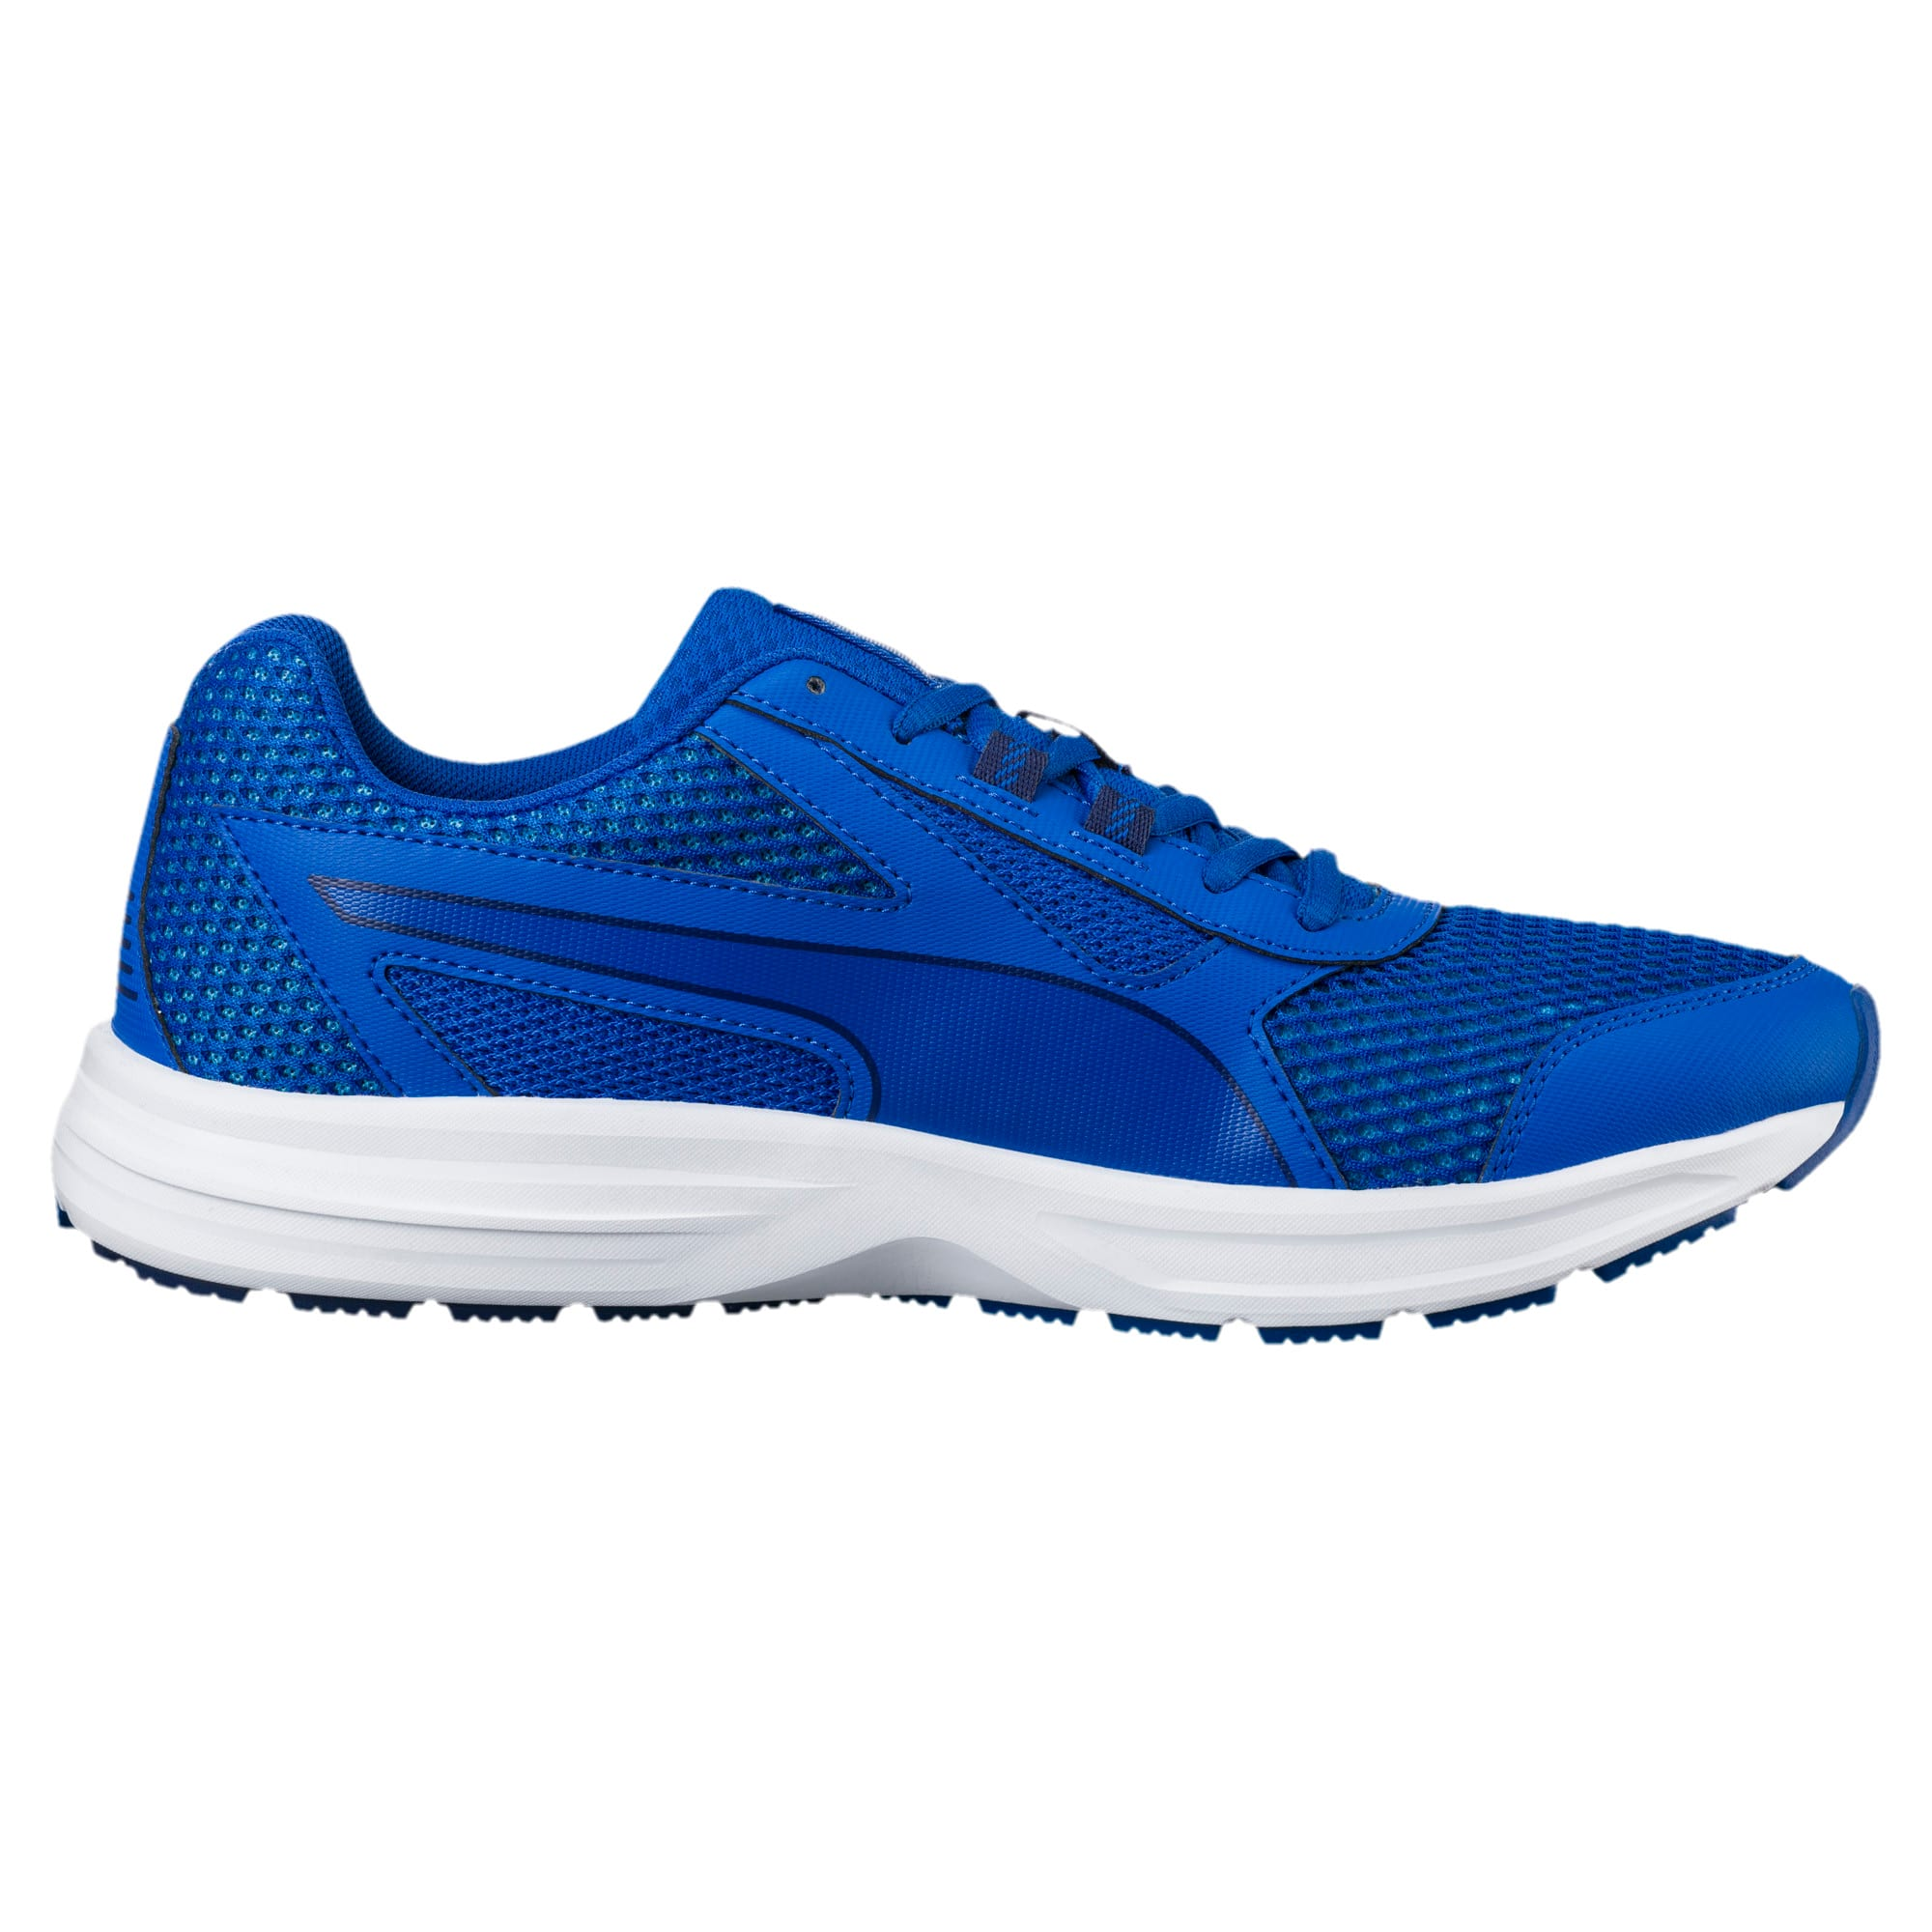 Thumbnail 4 of Essential Runner Men's Running Shoes, Lapis Blue-Blue Depths-Turq, medium-IND